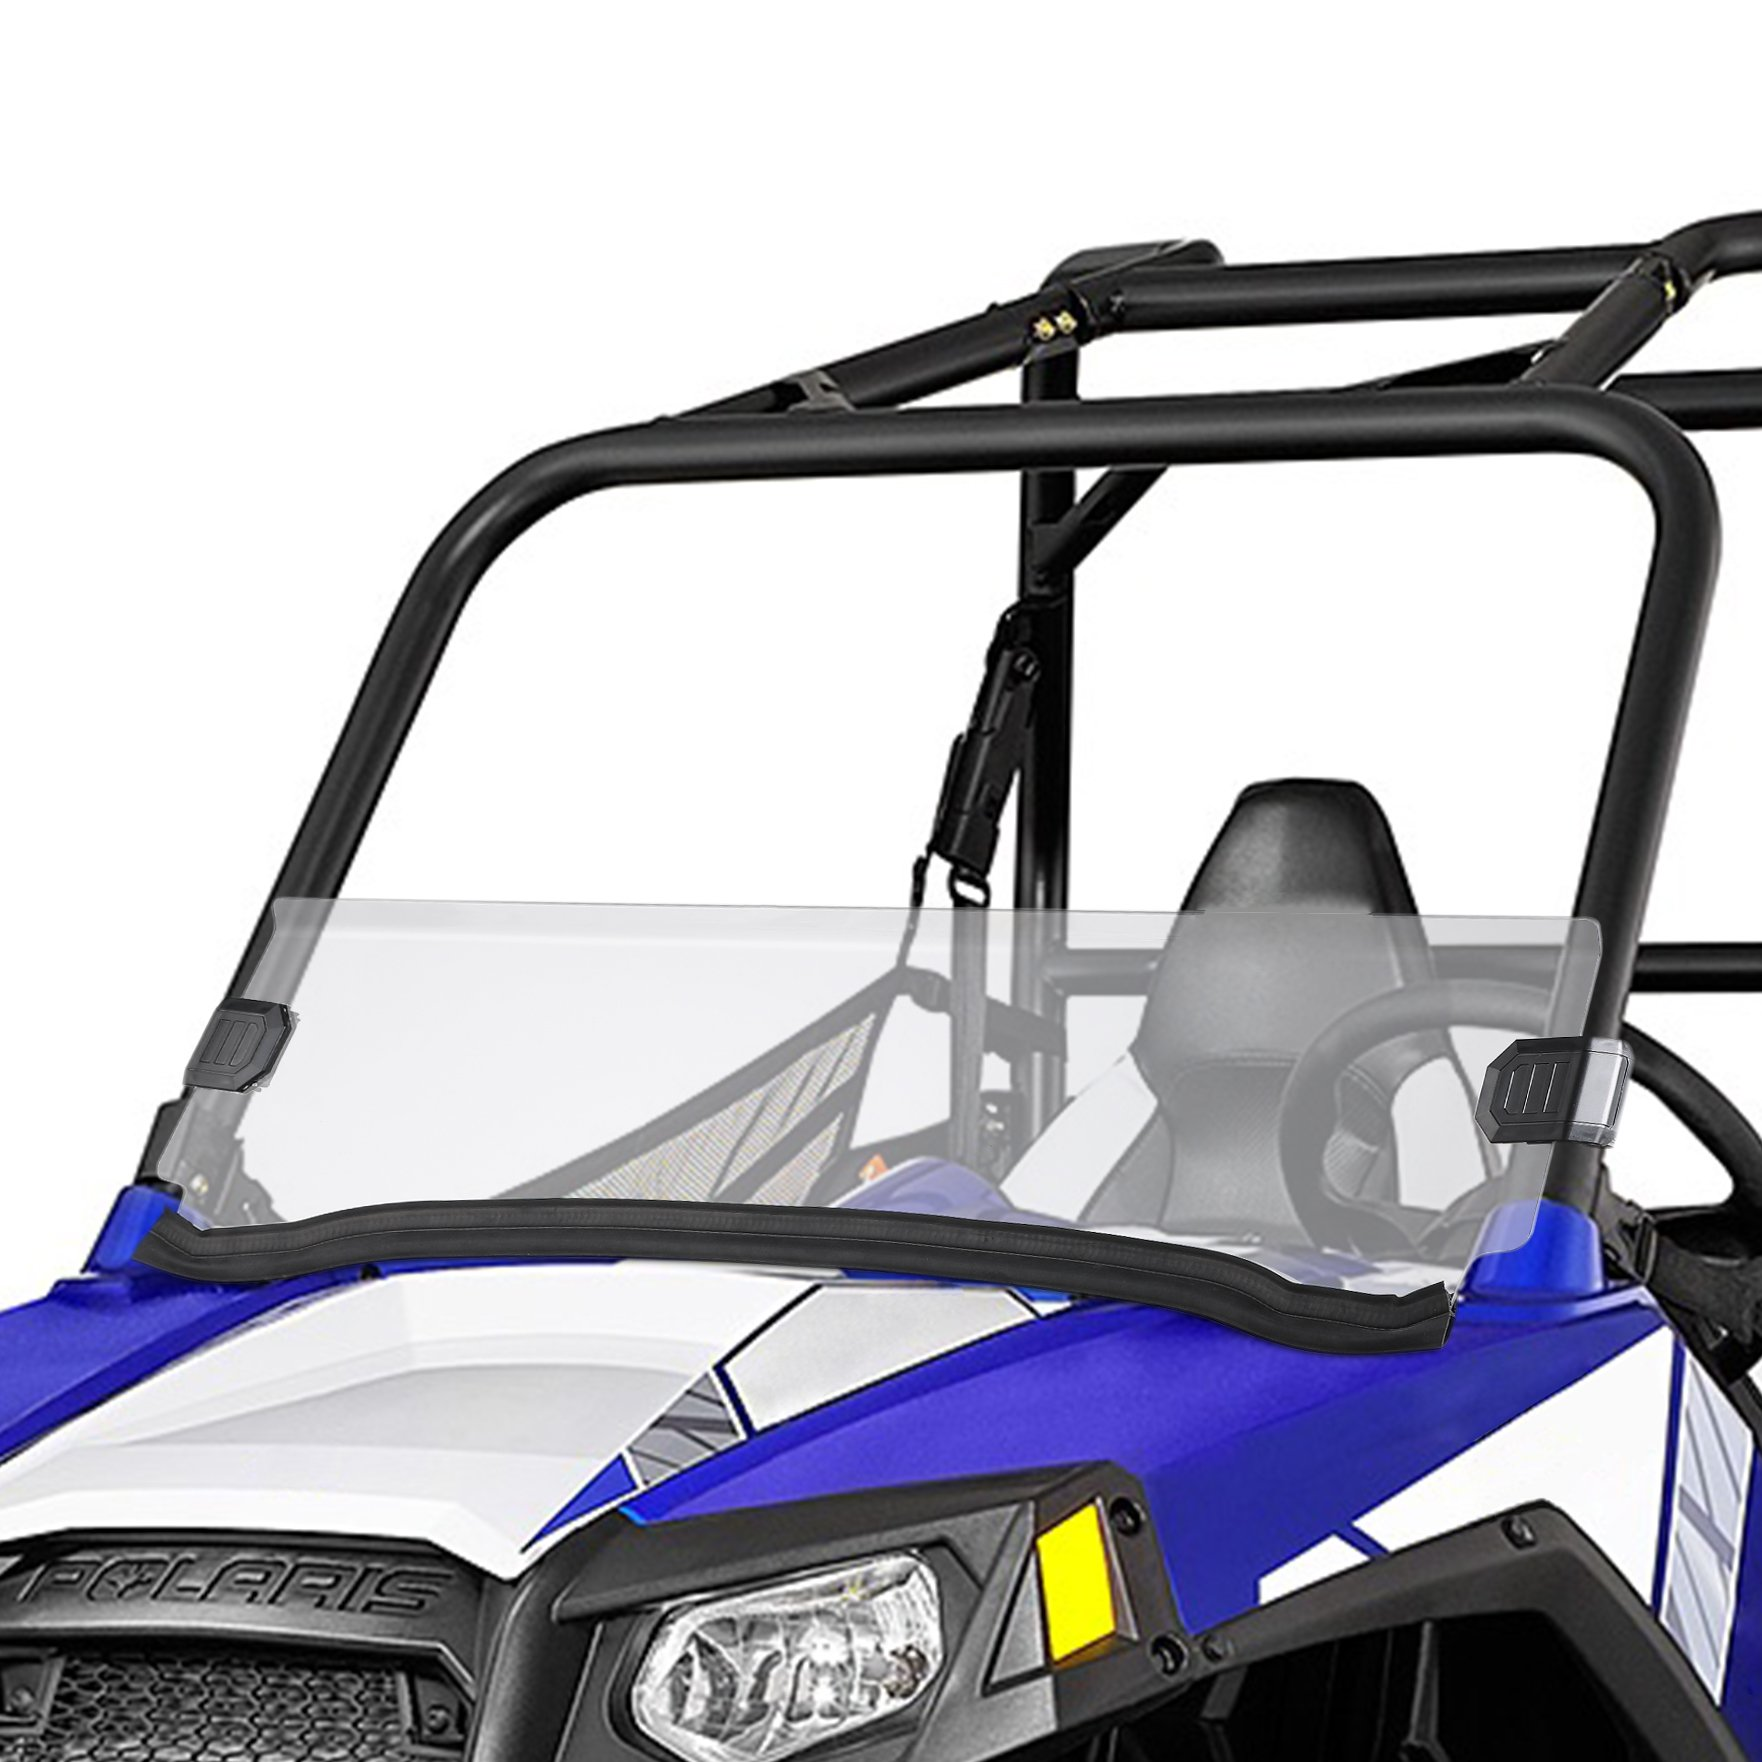 Polaris Razor UTV Half Windshield for 09-14 RZR S 800, 10-14 RZR 4 800, 11-14 RZR XP 900, 12-18 RZR 570, 12-14 RZR XP 4 900